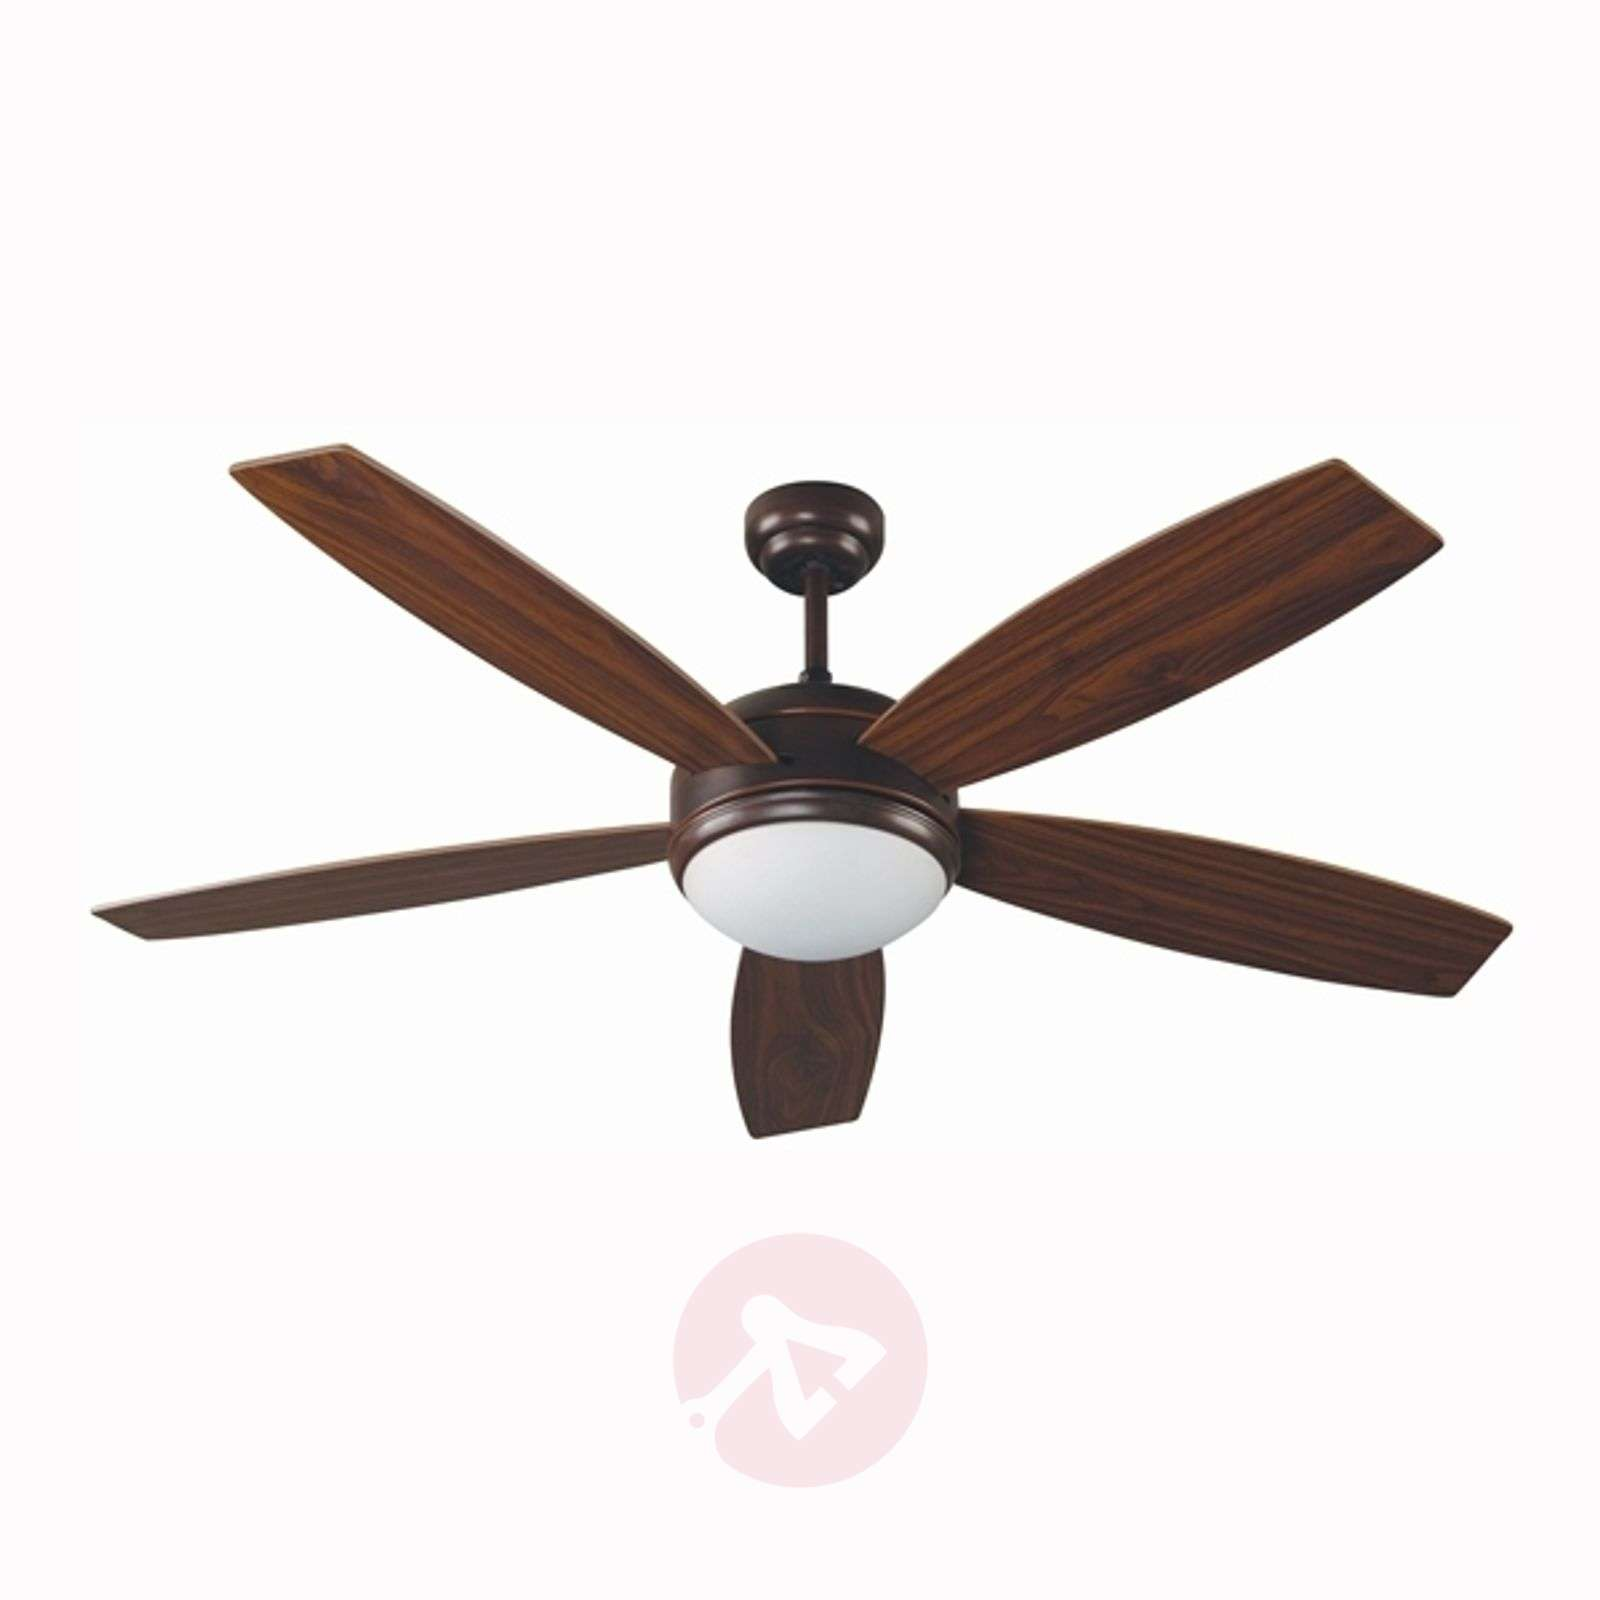 Large Ceiling Fan Sizes: VANU Large Ceiling Fan With Remote Control, Brown